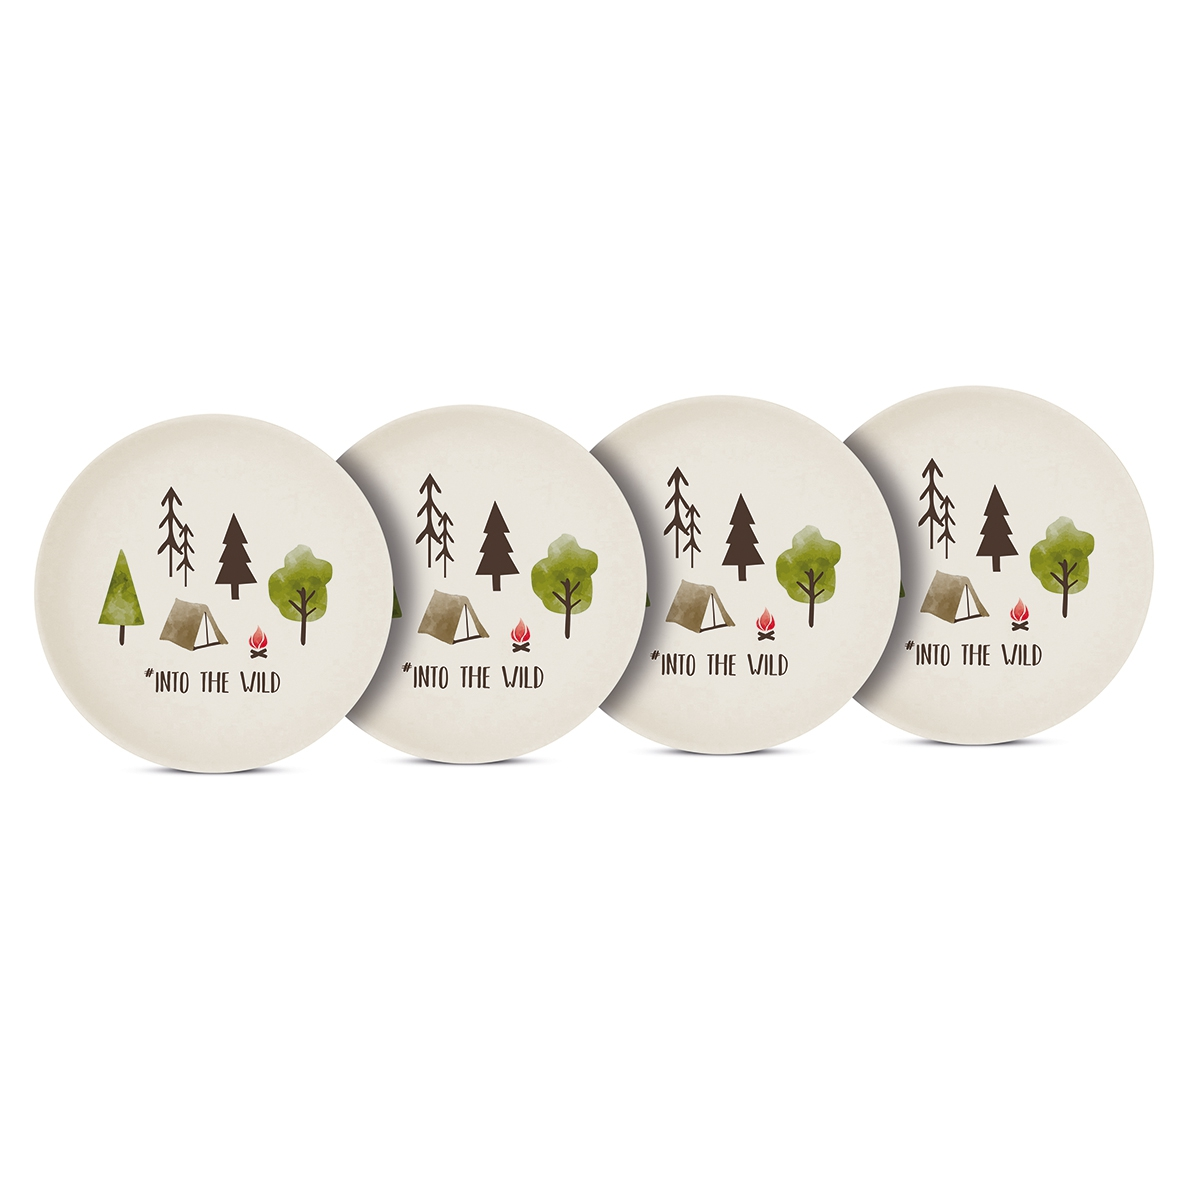 Bamboo plate - Into the wild Set of 4